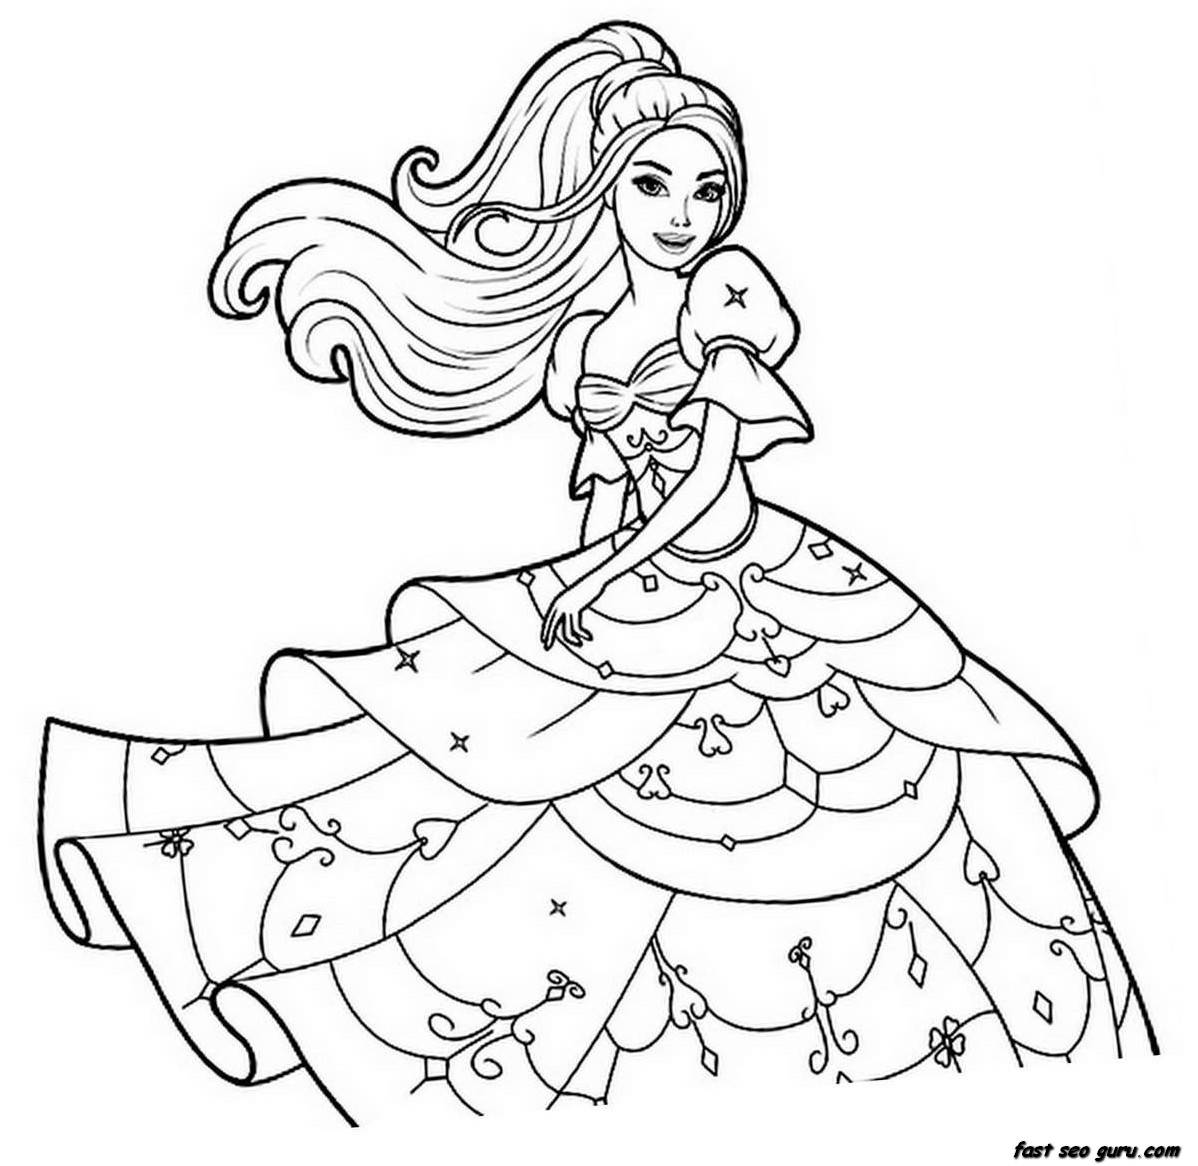 Coloring_Pages_For_Girls_01